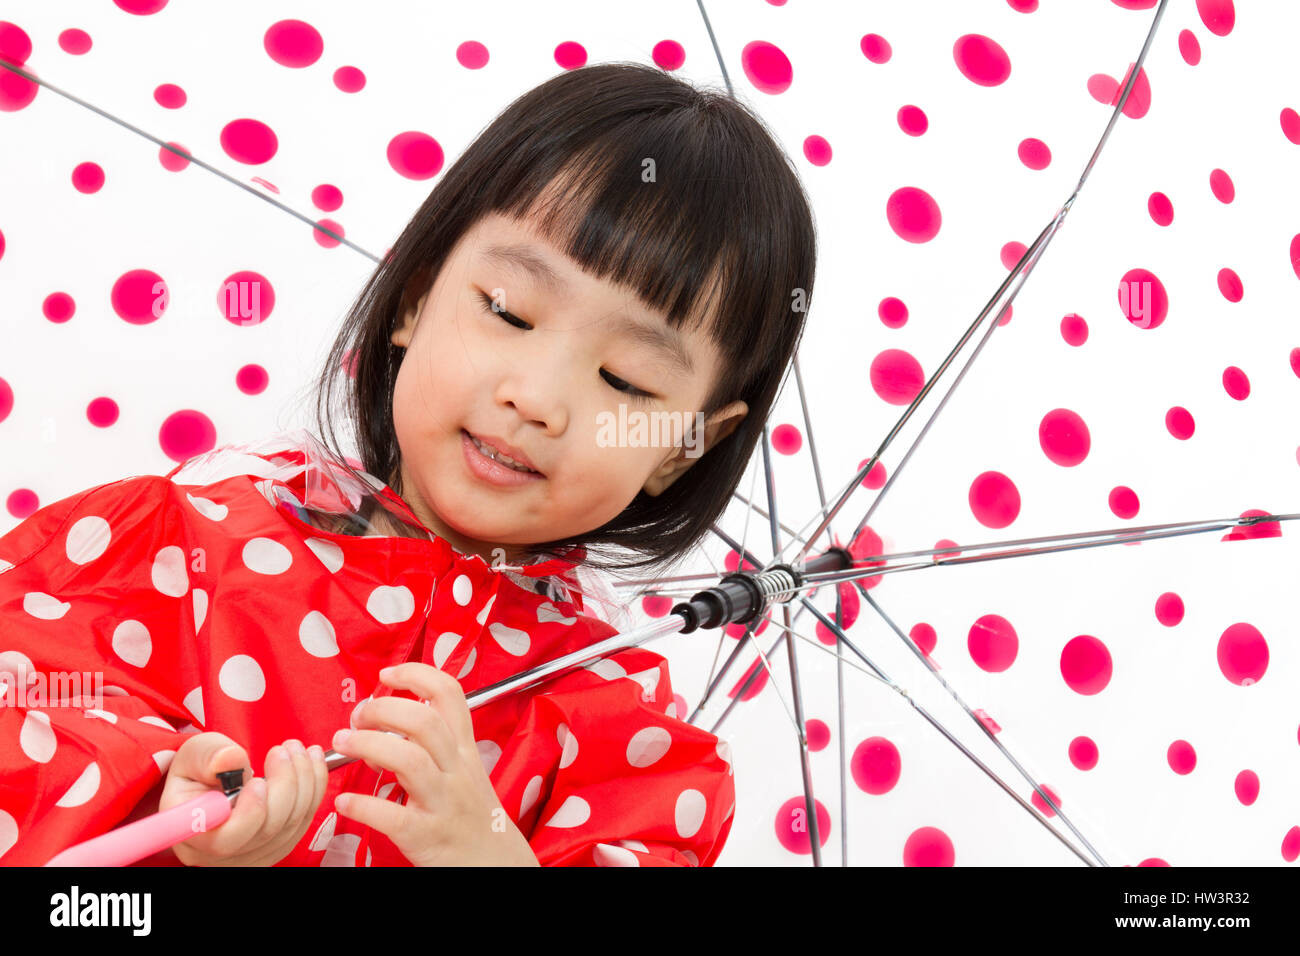 Chinese Little Girl Holding Umbrella Stock Photos